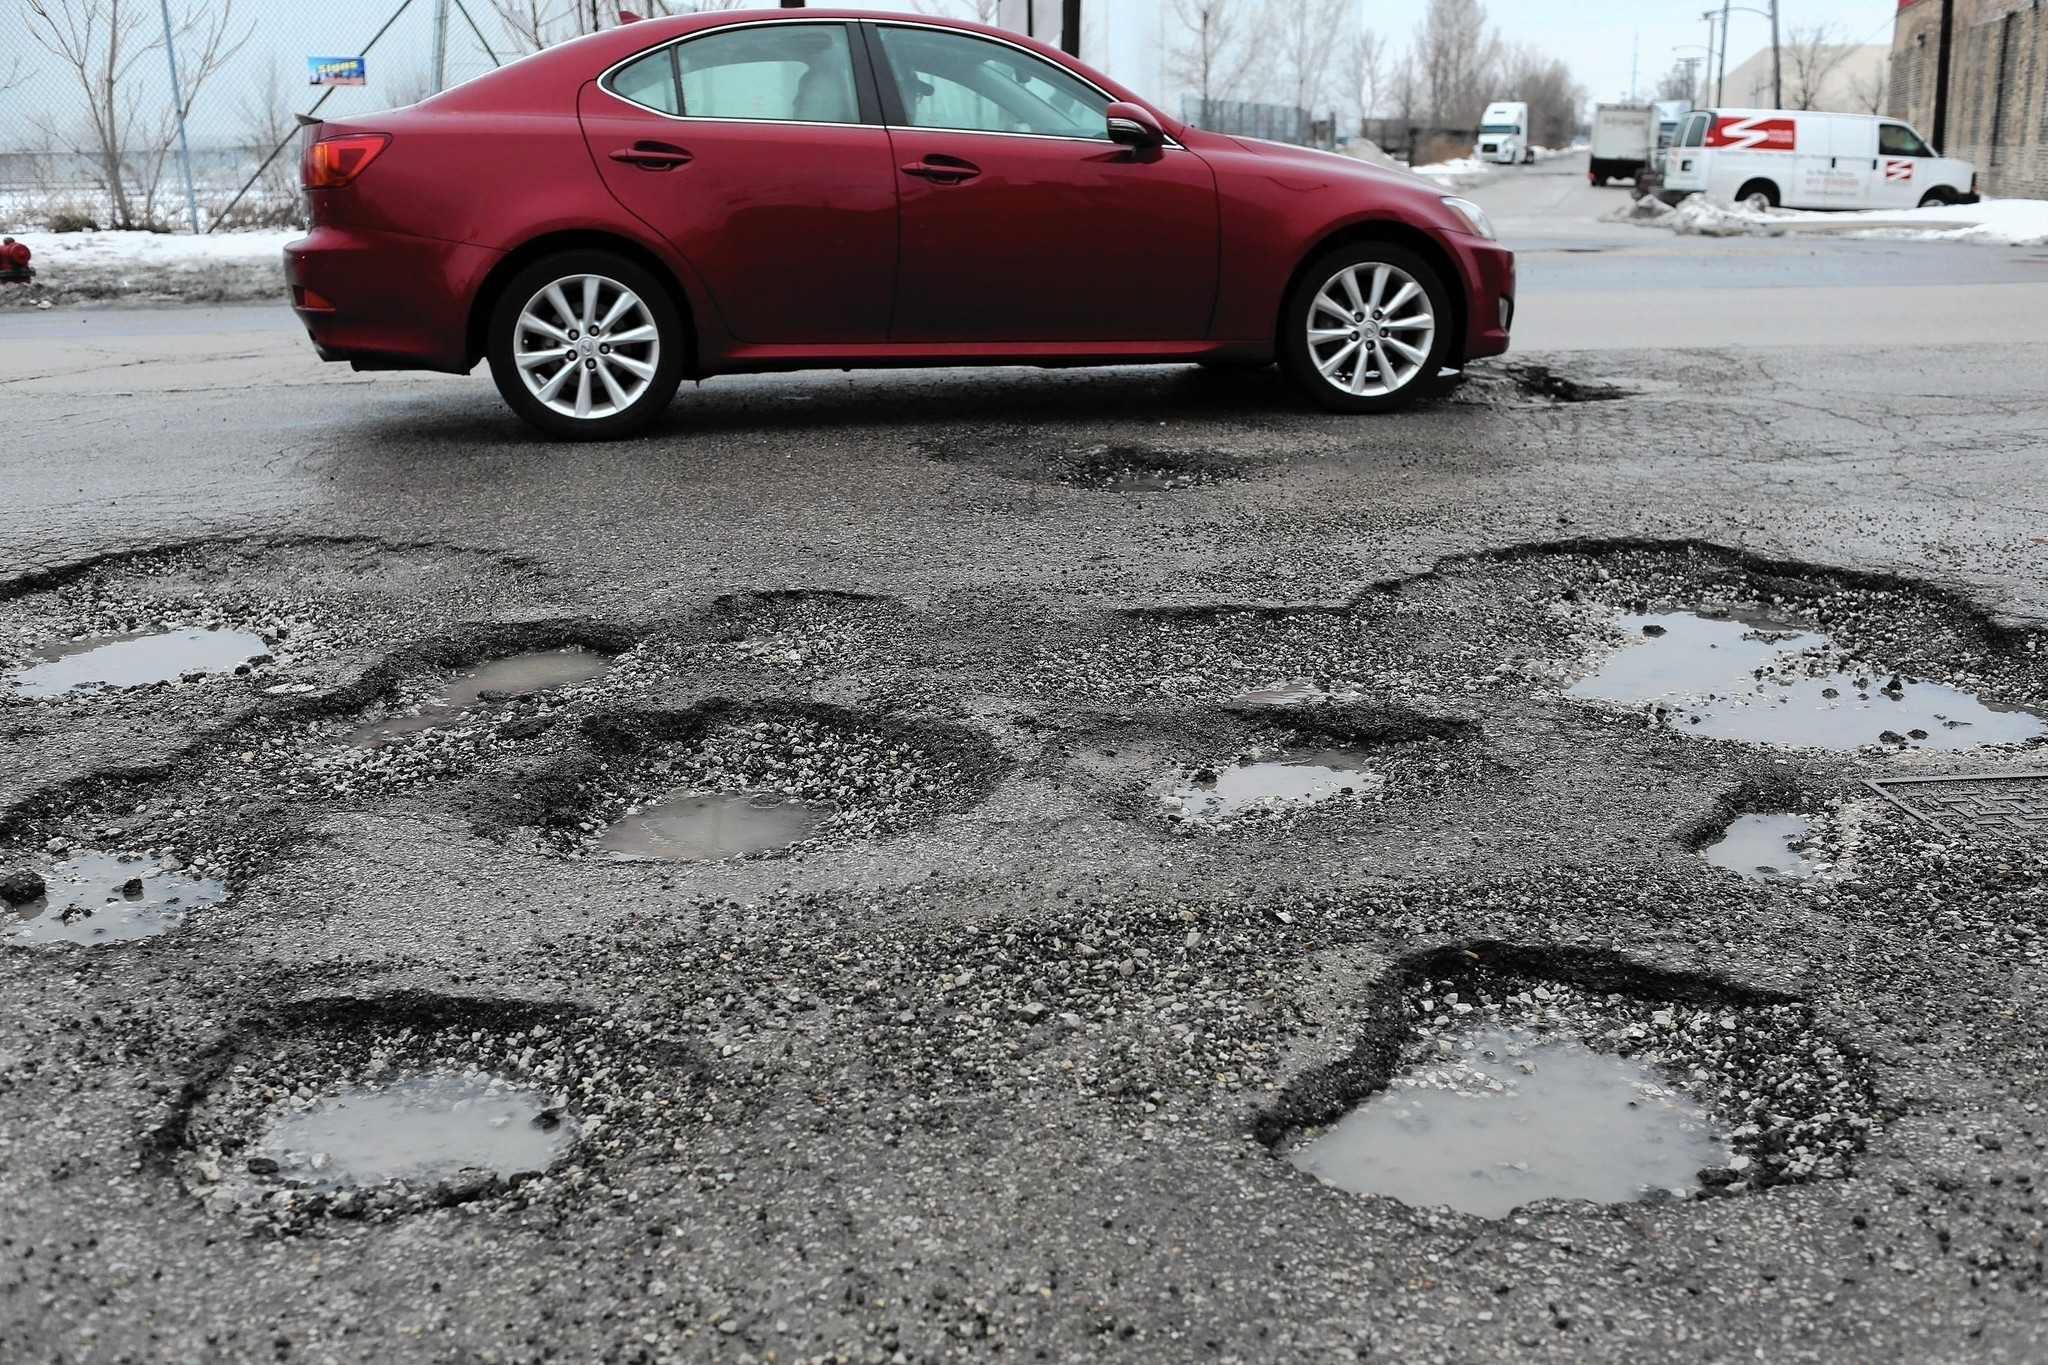 All Vehicle Contracts >> How to minimize damage from potholes - Chicago Tribune